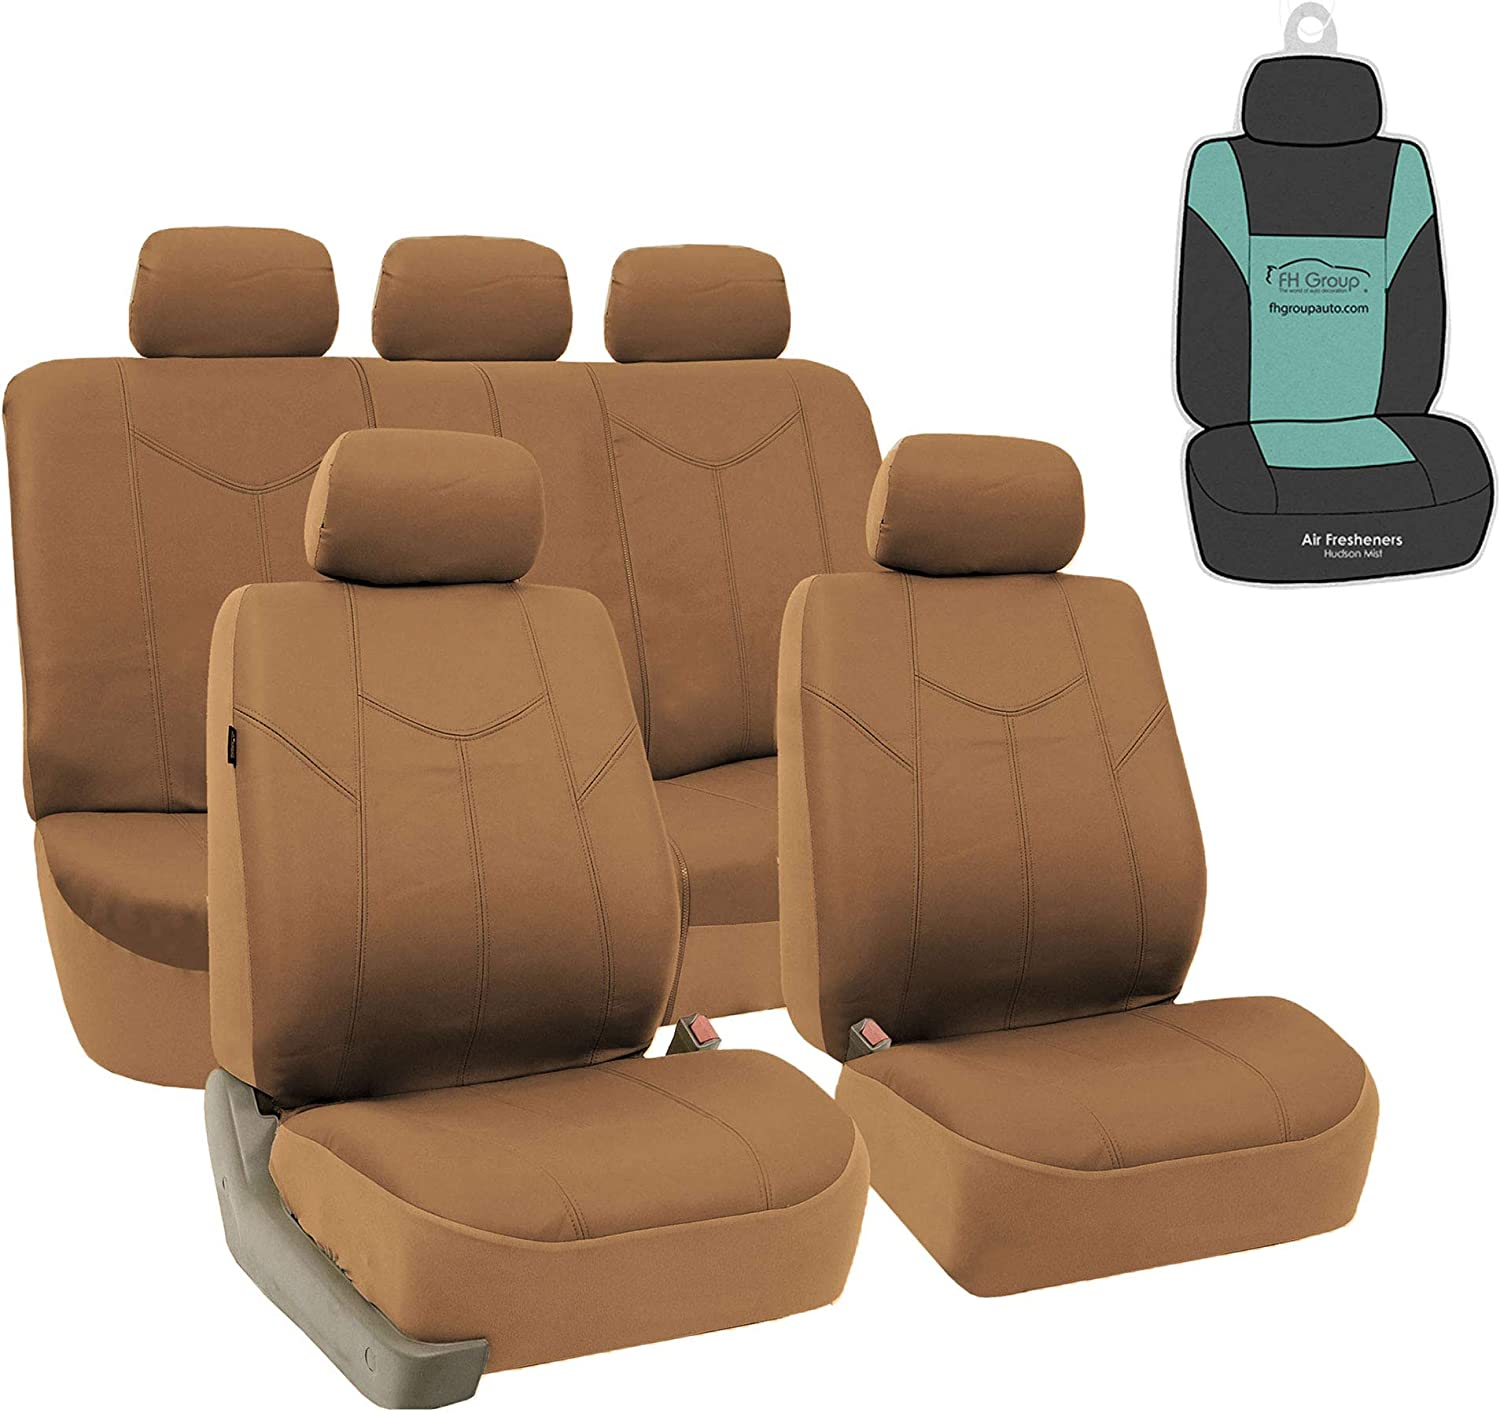 FH Group PU009114 Rome PU Leather Seat Covers Airbag Ready & Rear Split Tan with Gift - Fit Most